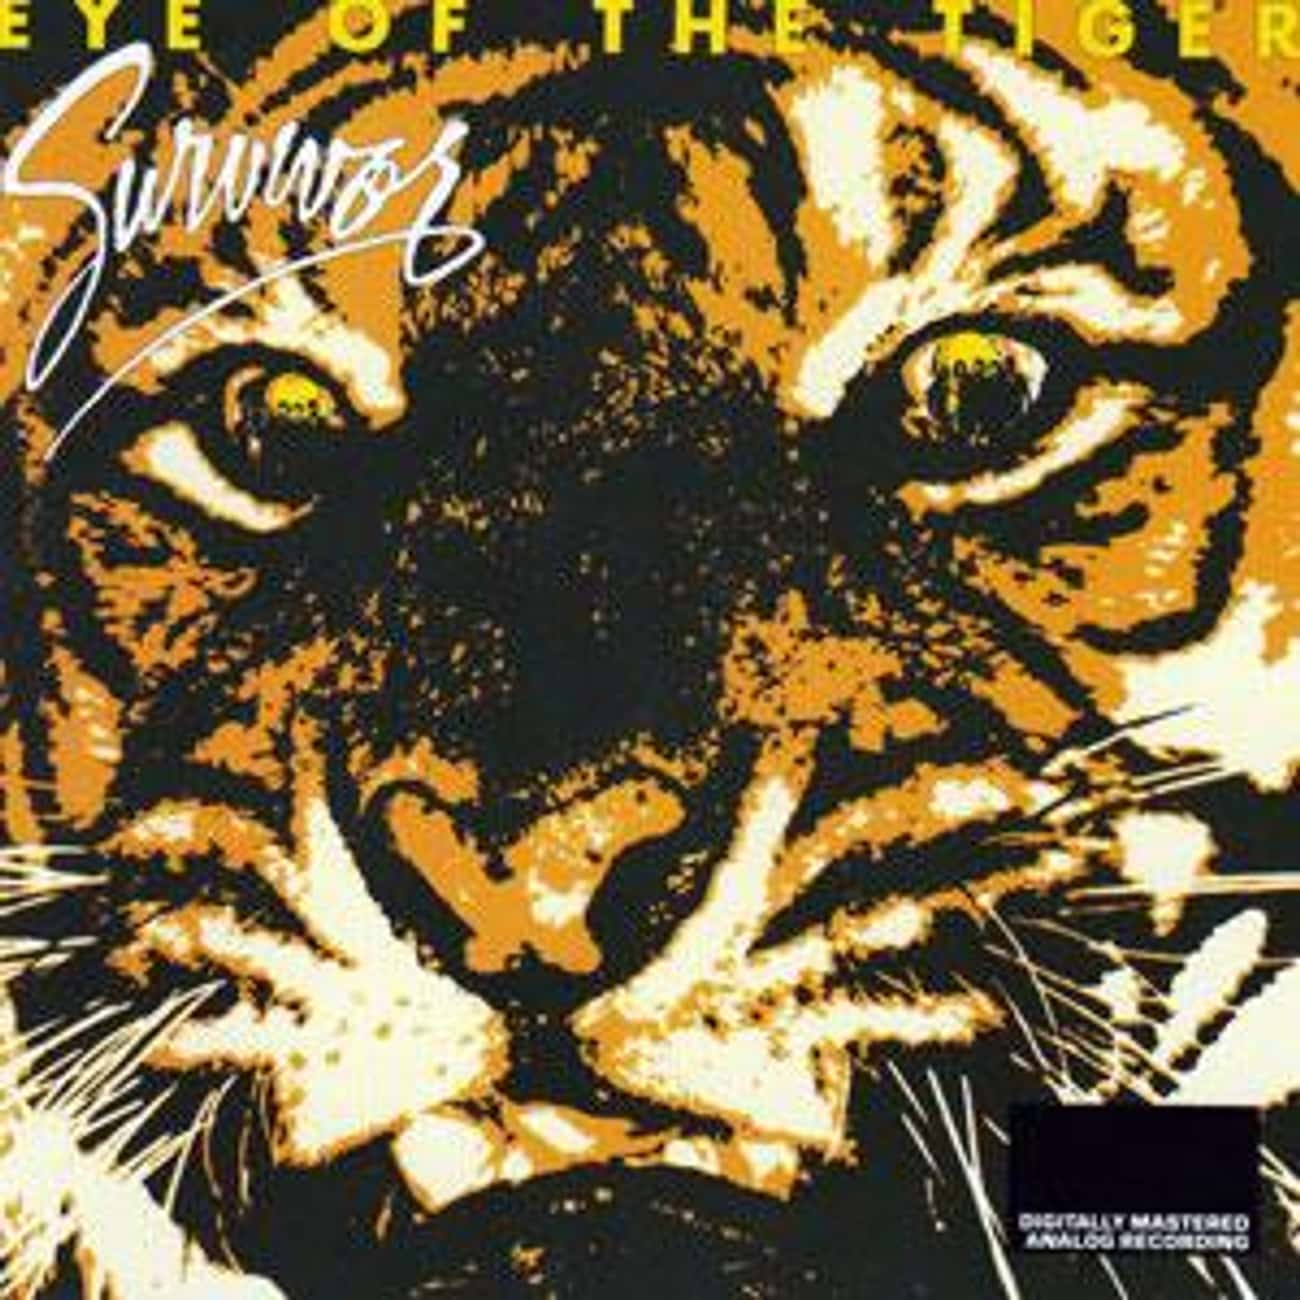 Eye of the Tiger is listed (or ranked) 2 on the list The Best Survivor Albums of All Time